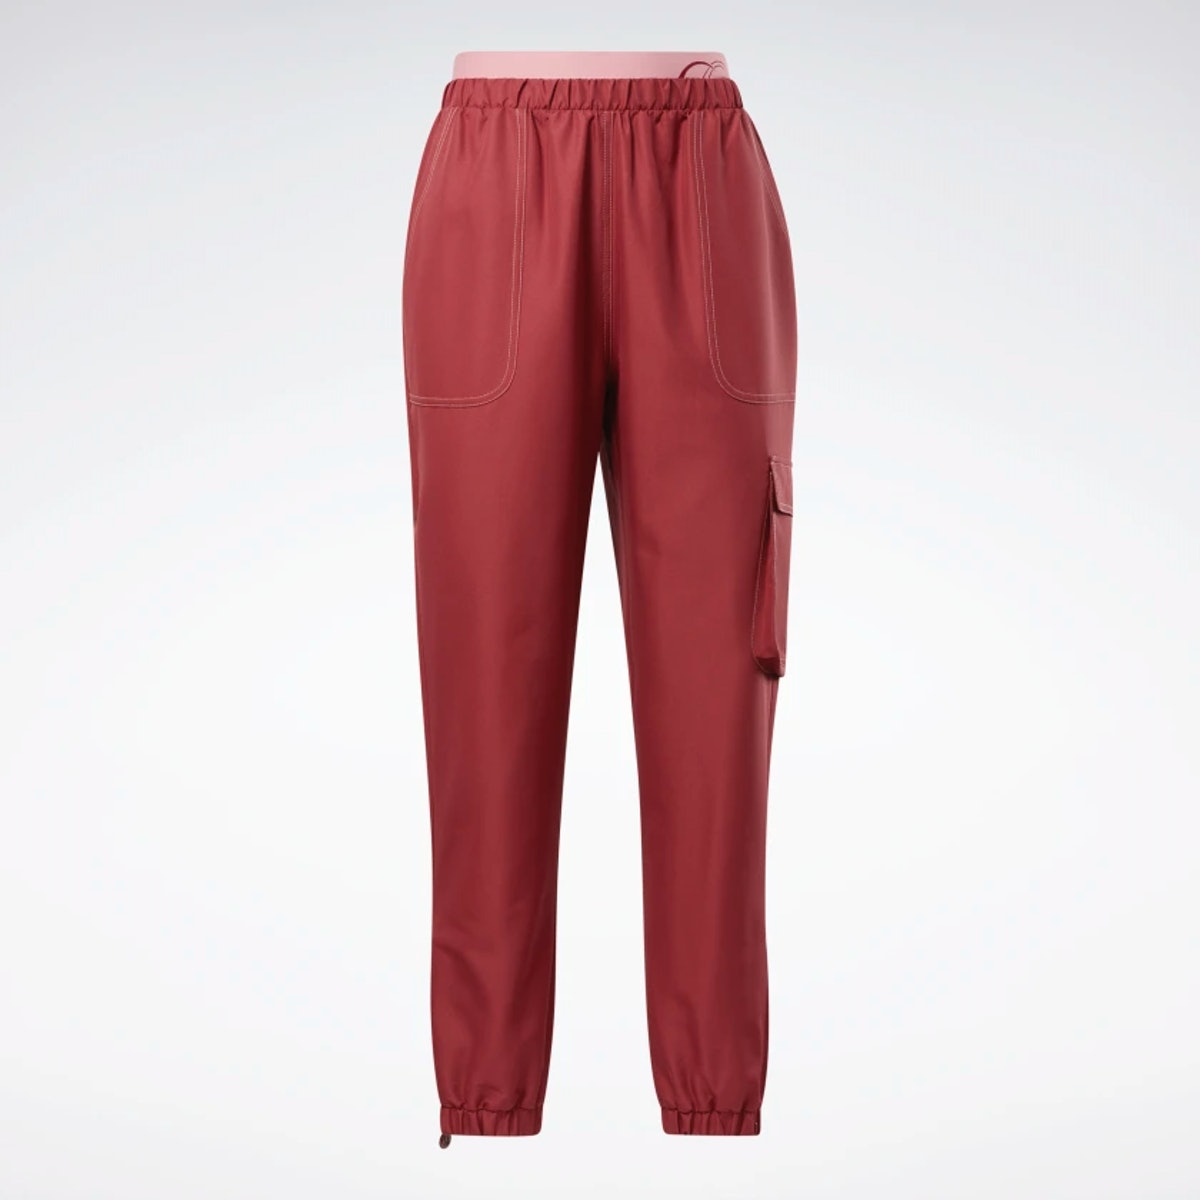 Cardi B's track pants in red and pink.